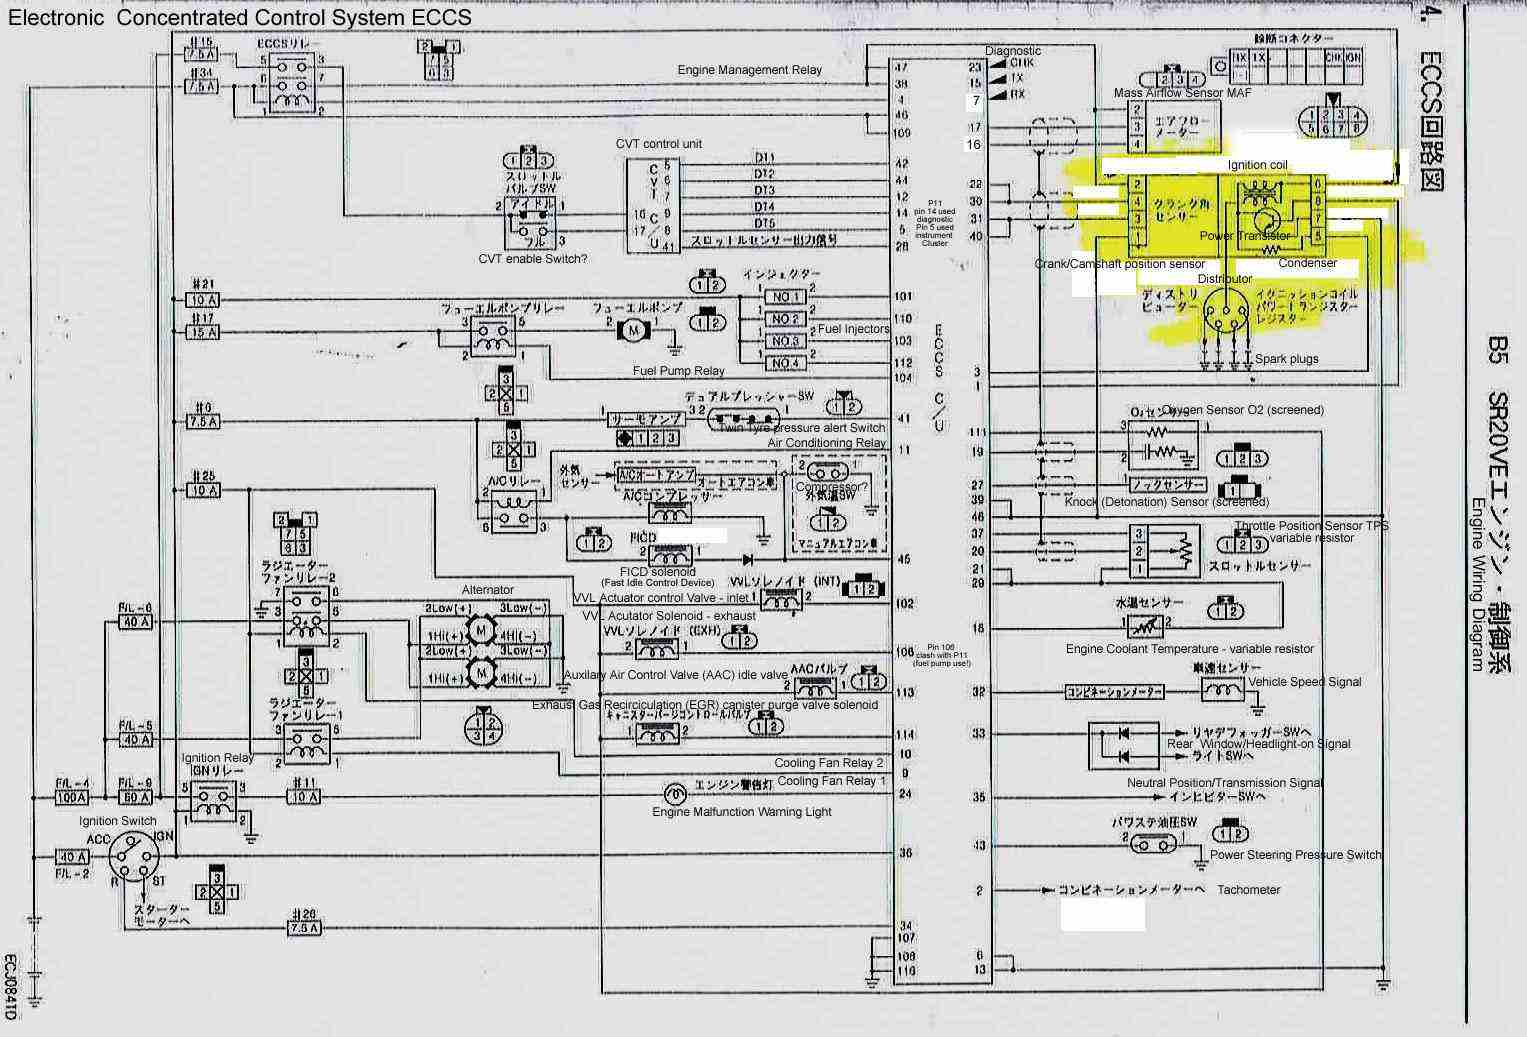 9f1 thomas bus wiring schematics 1999 | wiring resources  wiring resources